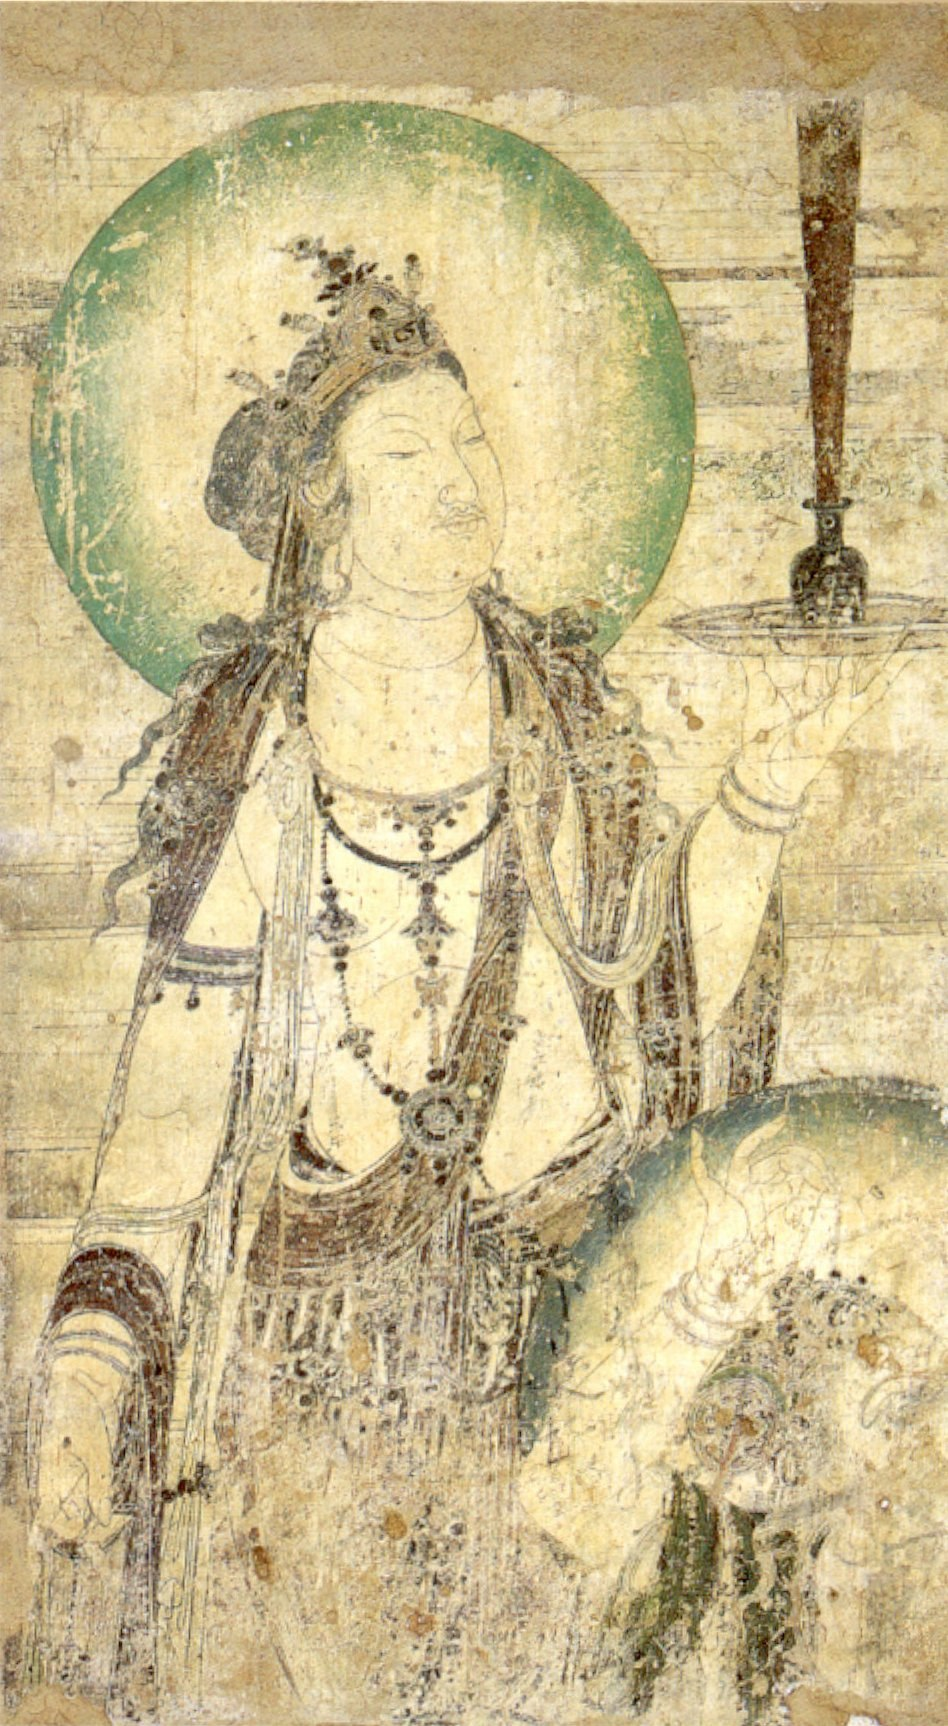 Chinese mural of a bodhisattva, ink and color on plaster, c. 952, Honolulu Academy of Arts